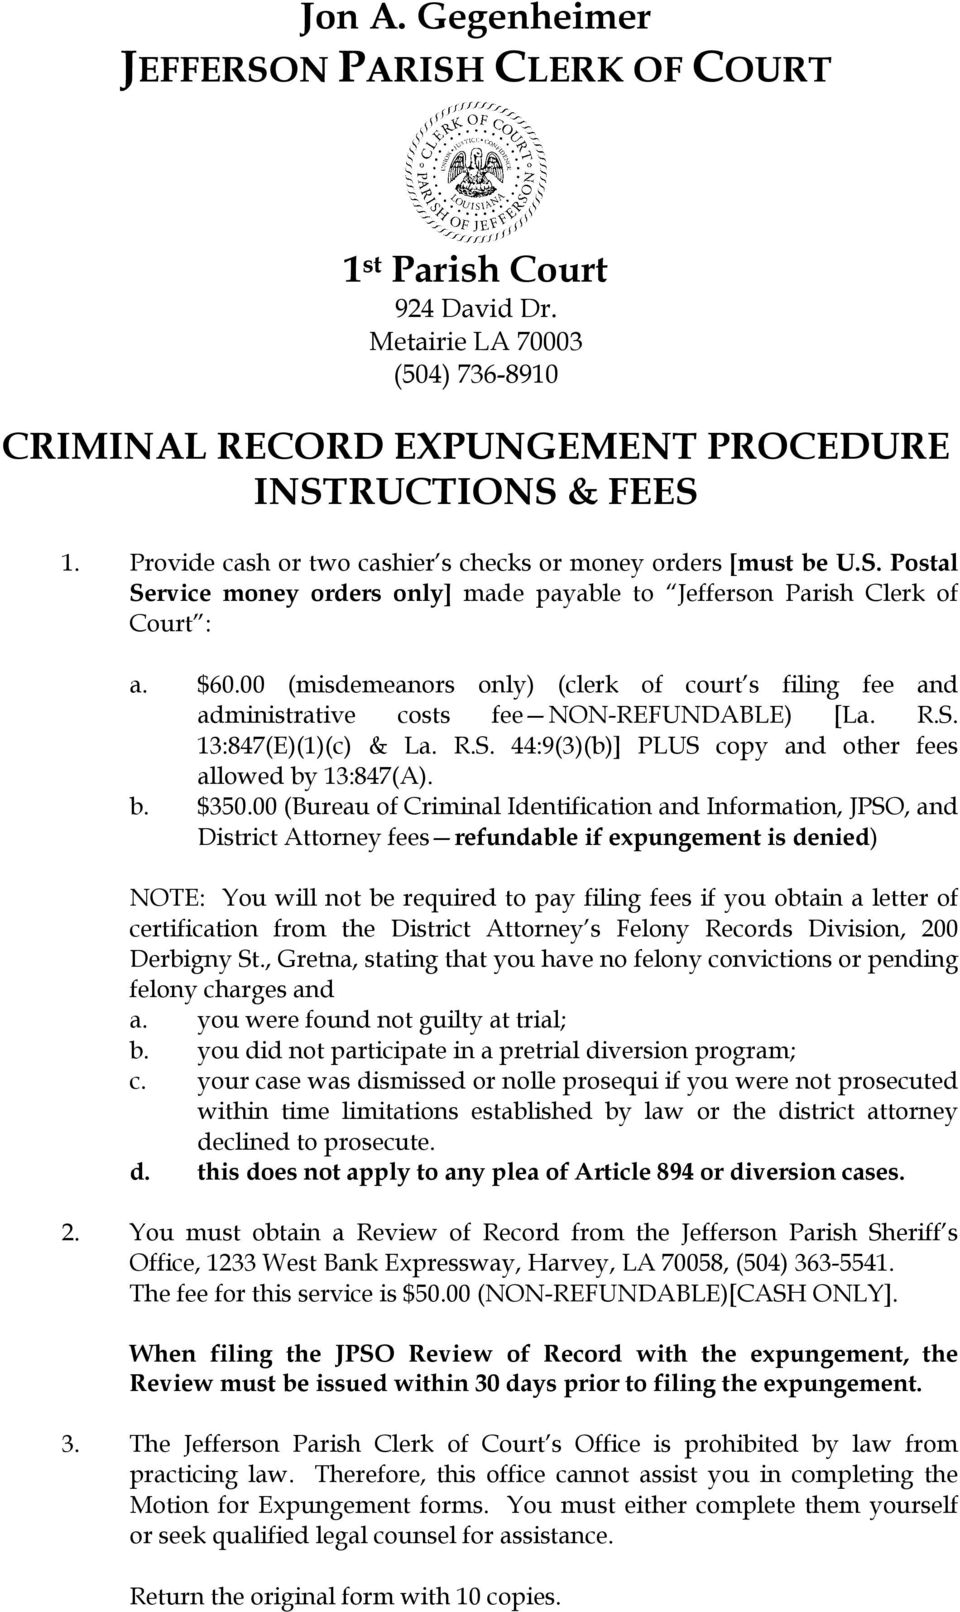 00 (misdemeanors only) (clerk of court s filing fee and administrative costs fee NON-REFUNDABLE) [La. R.S. 13:847(E)(1)(c) & La. R.S. 44:9(3)(b)] PLUS copy and other fees allowed by 13:847(A). b. $350.